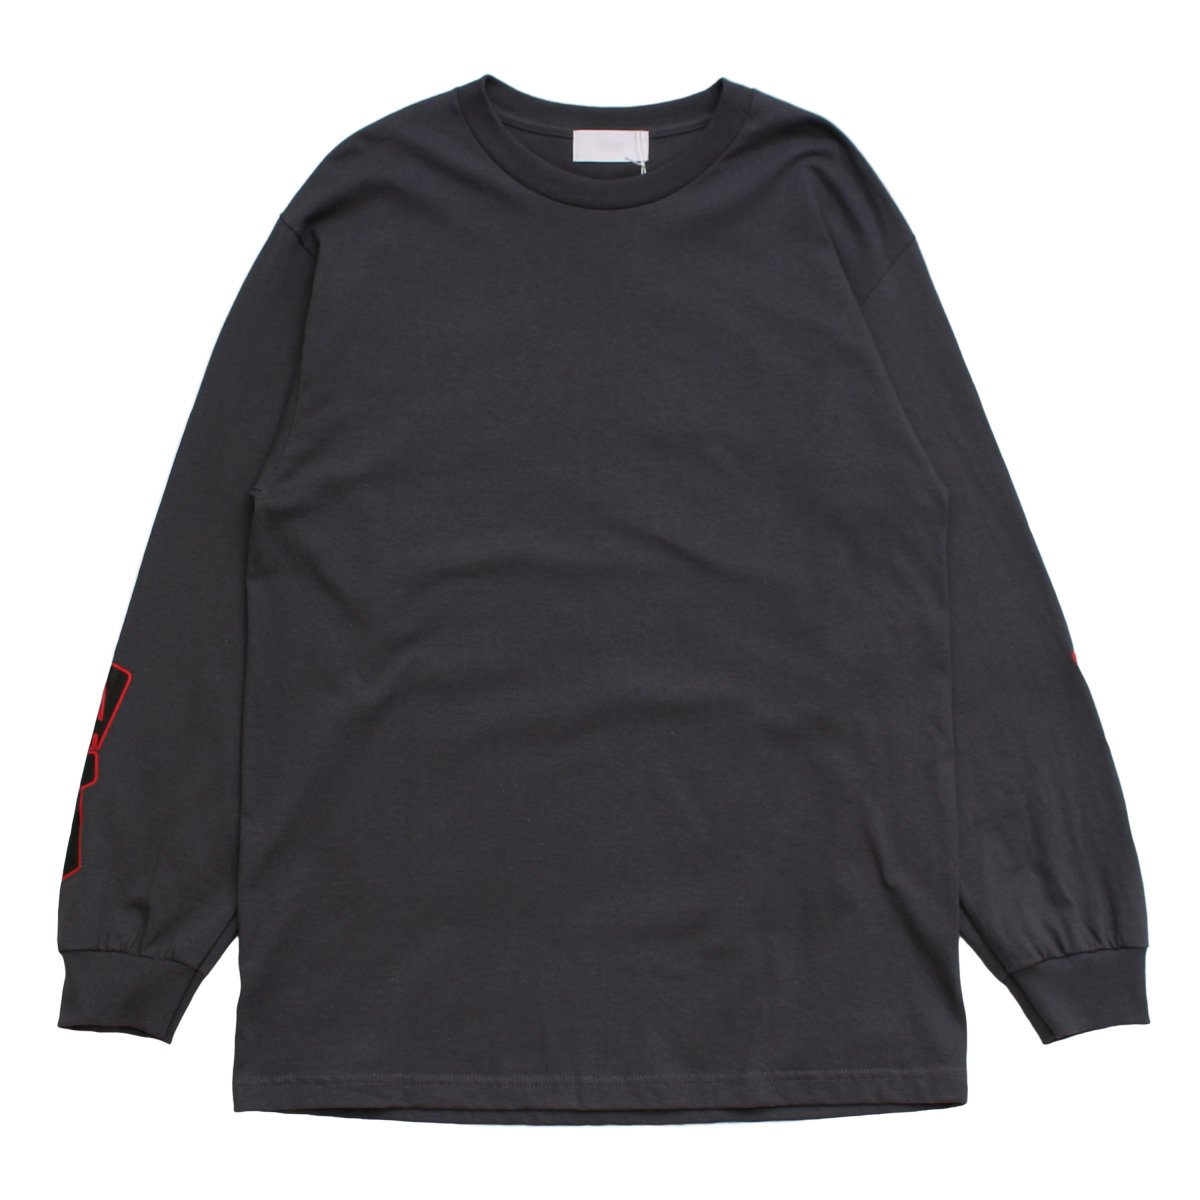 NUMBERRING LOGO L/S TEE 【CHARCOAL】